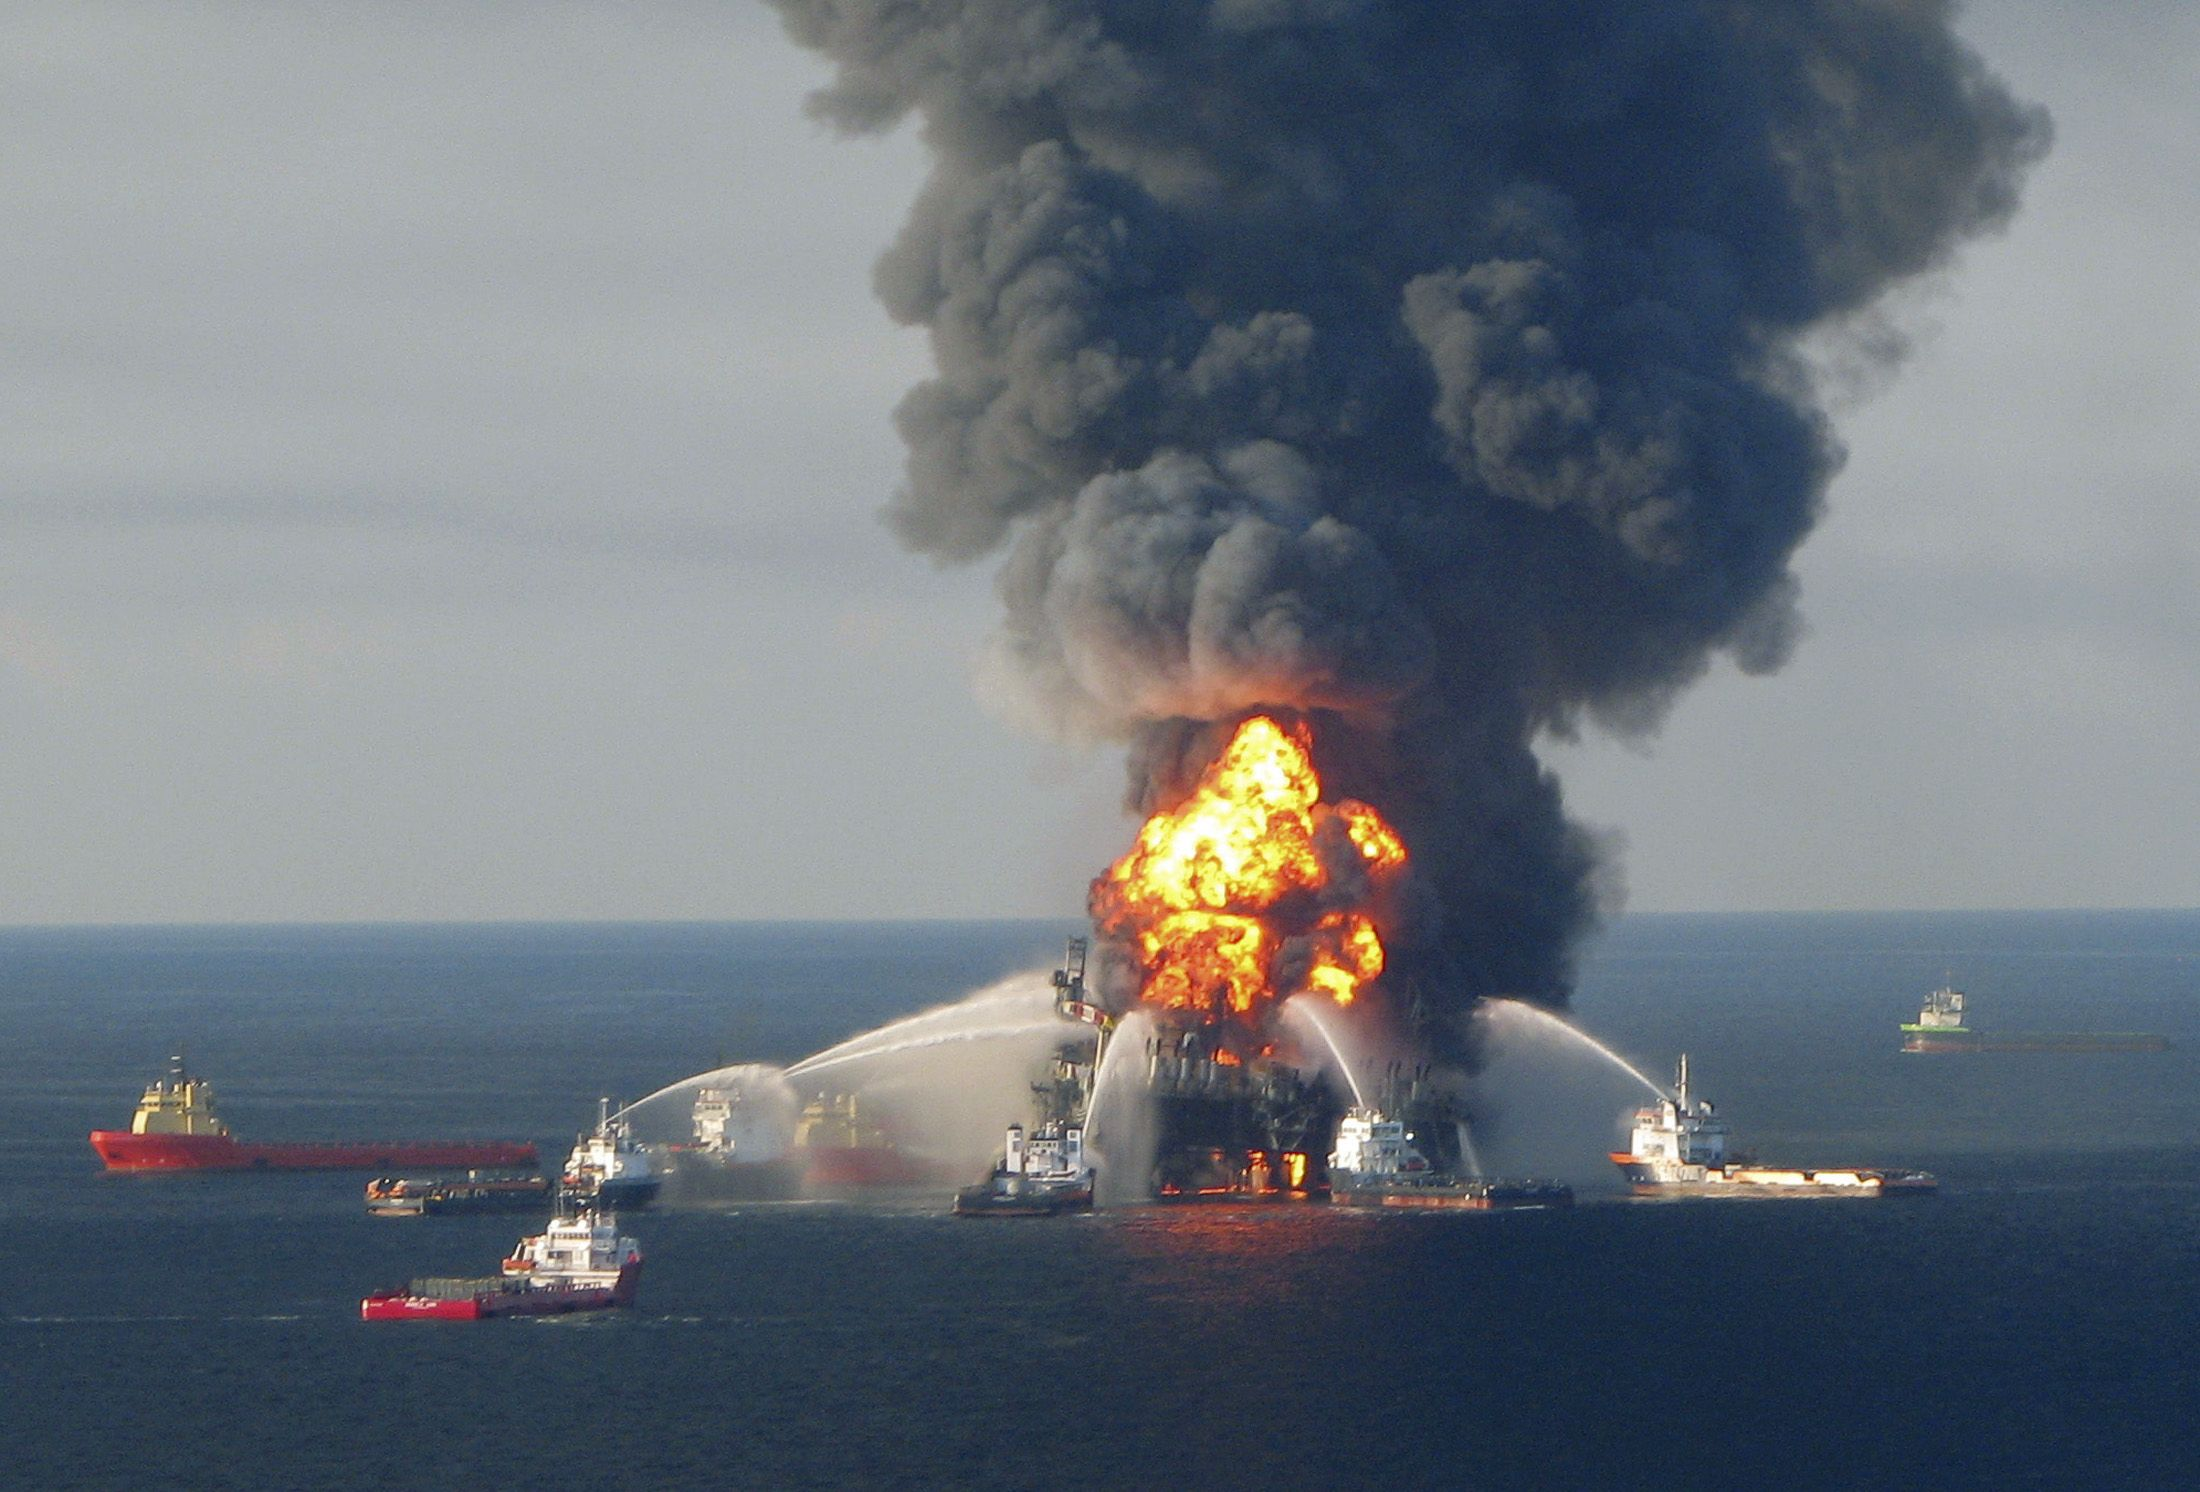 BP Oil Spill fire